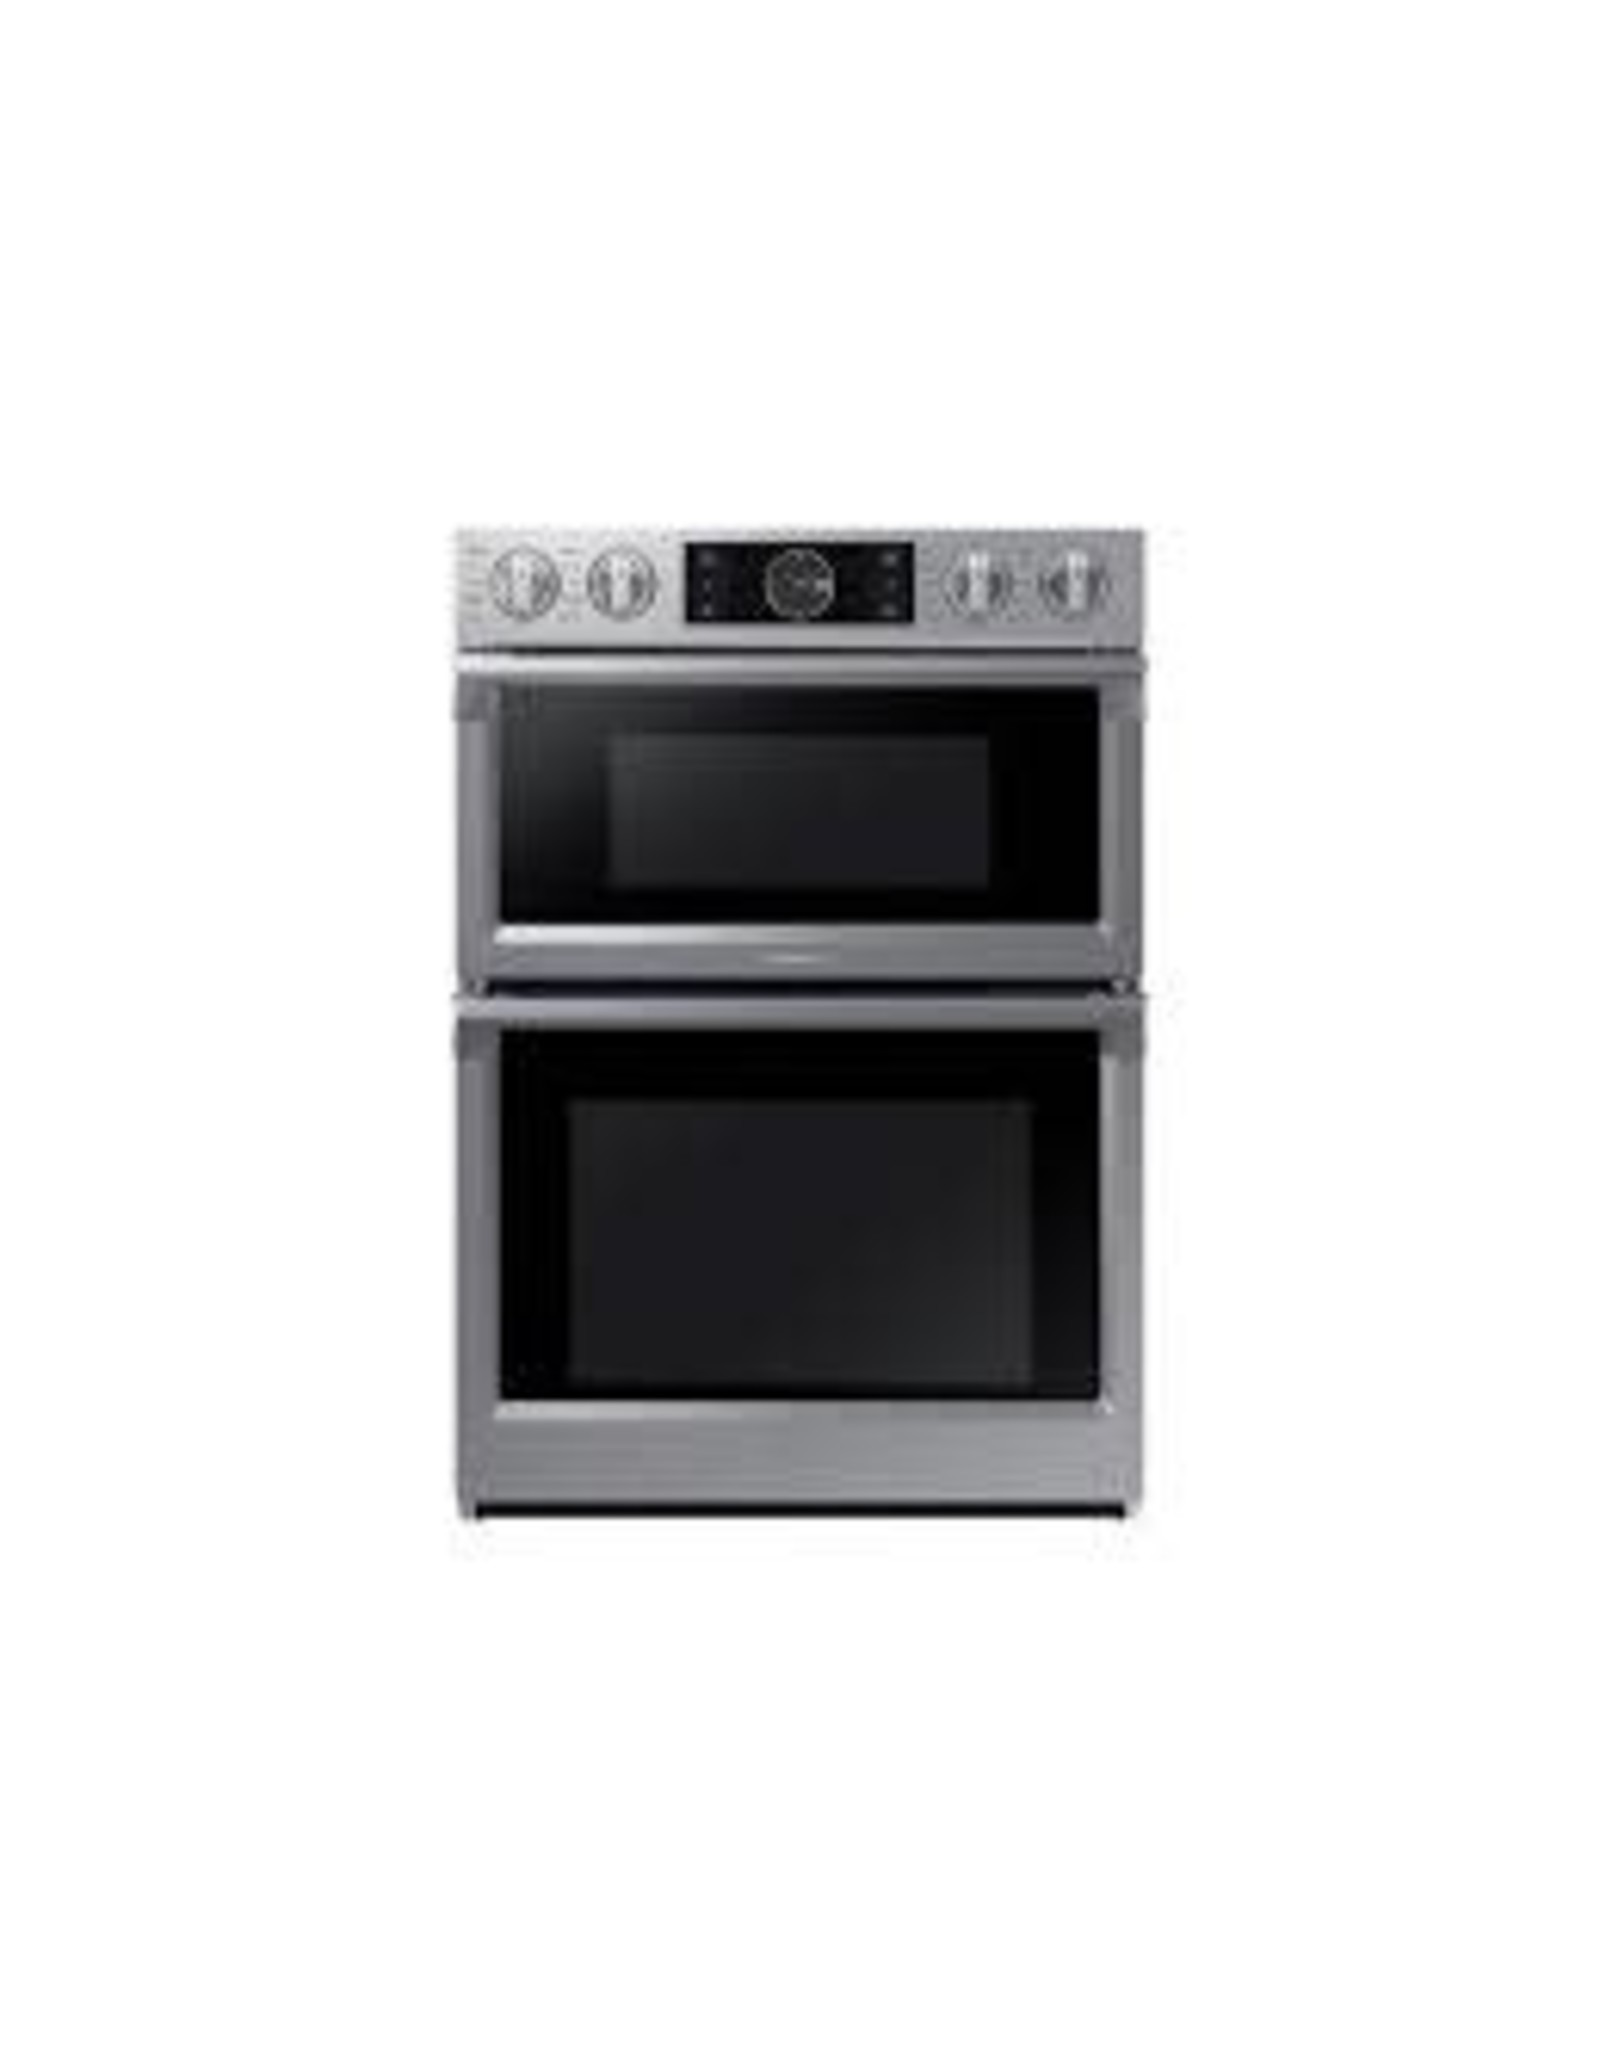 SAMSUNG NQ70M7770DG 30 in. Electric Steam Cook, Flex Duo Wall Oven Speed Cook Built-In Microwave in Stainless Steel